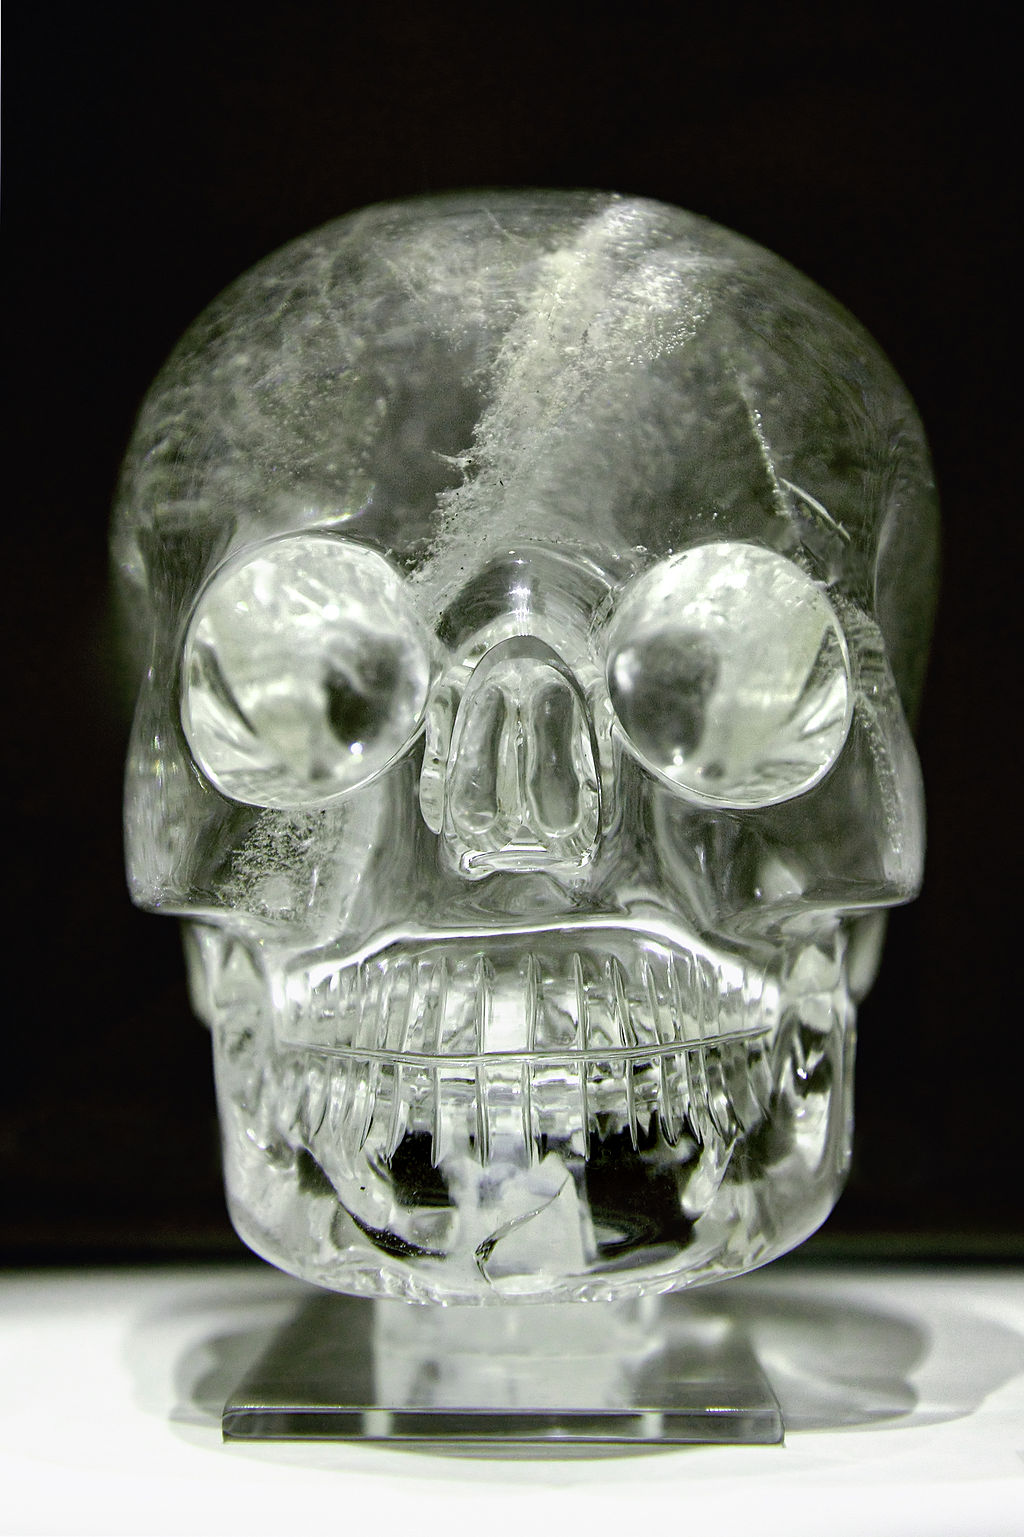 Crystal_skull_british_museum_similar in dimensions to the more detailed Mitchell-Hedges skull